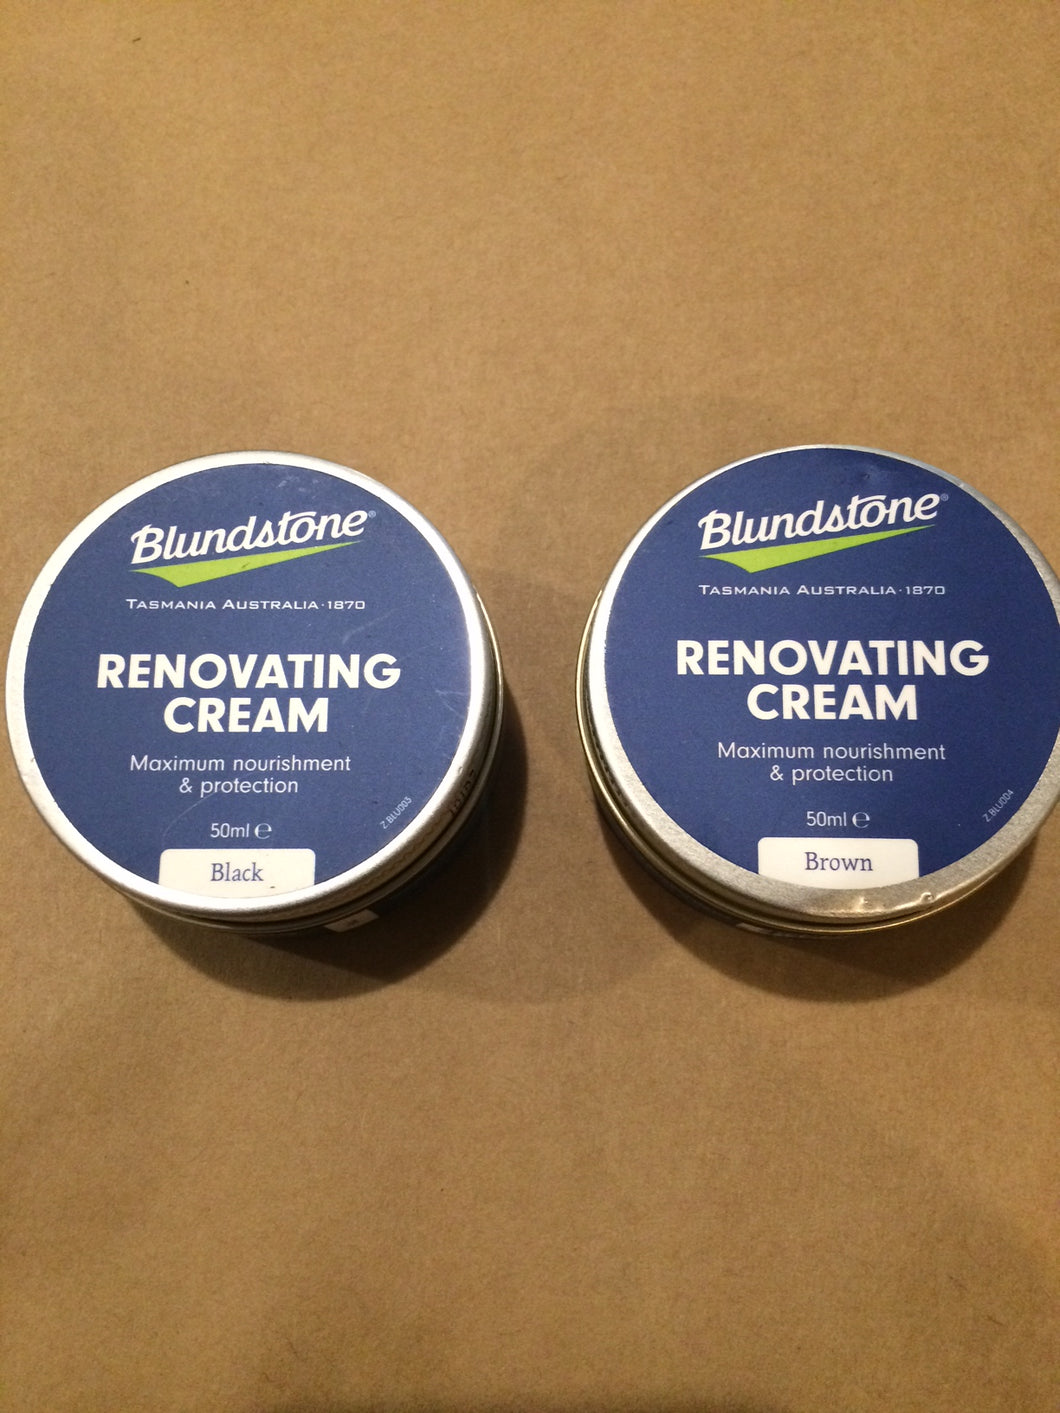 Blundstone Renovating Cream 50 ml